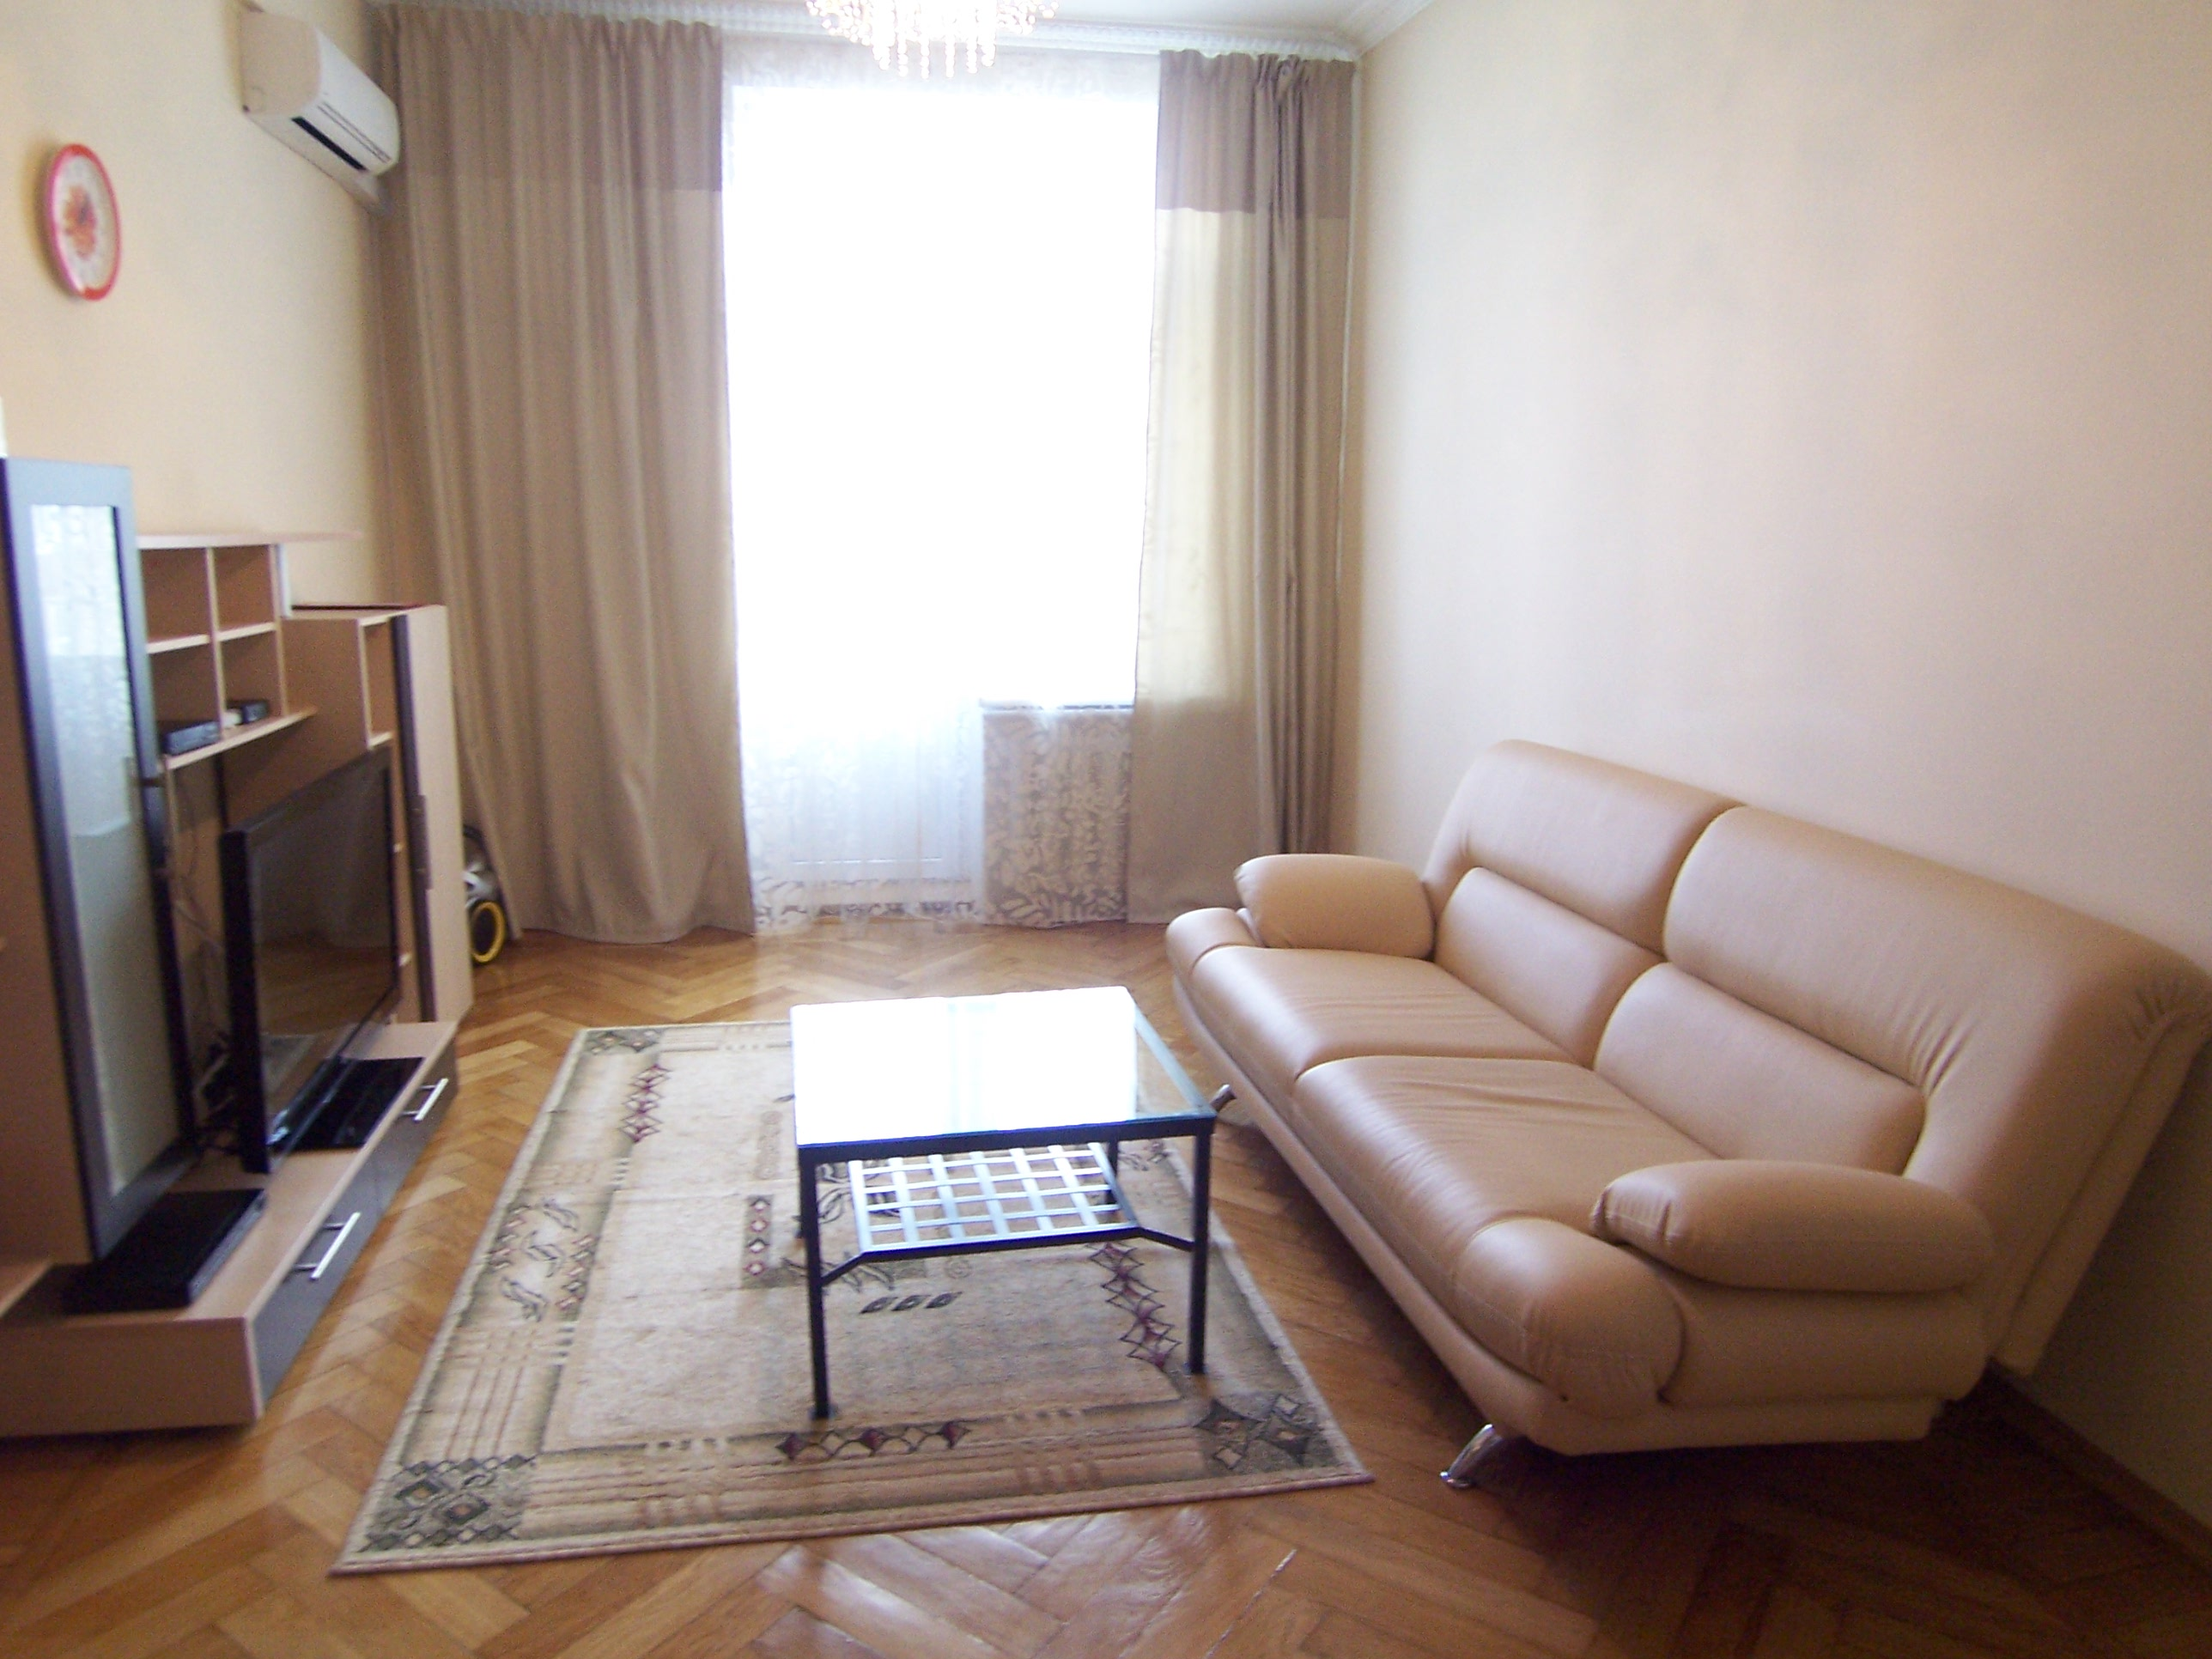 Short-term accommodation in Moscow has numerous advantages comparing to hotel room reservation. It perfectly fits all needs of either a single business person or groups and delegations.  This  two-bed